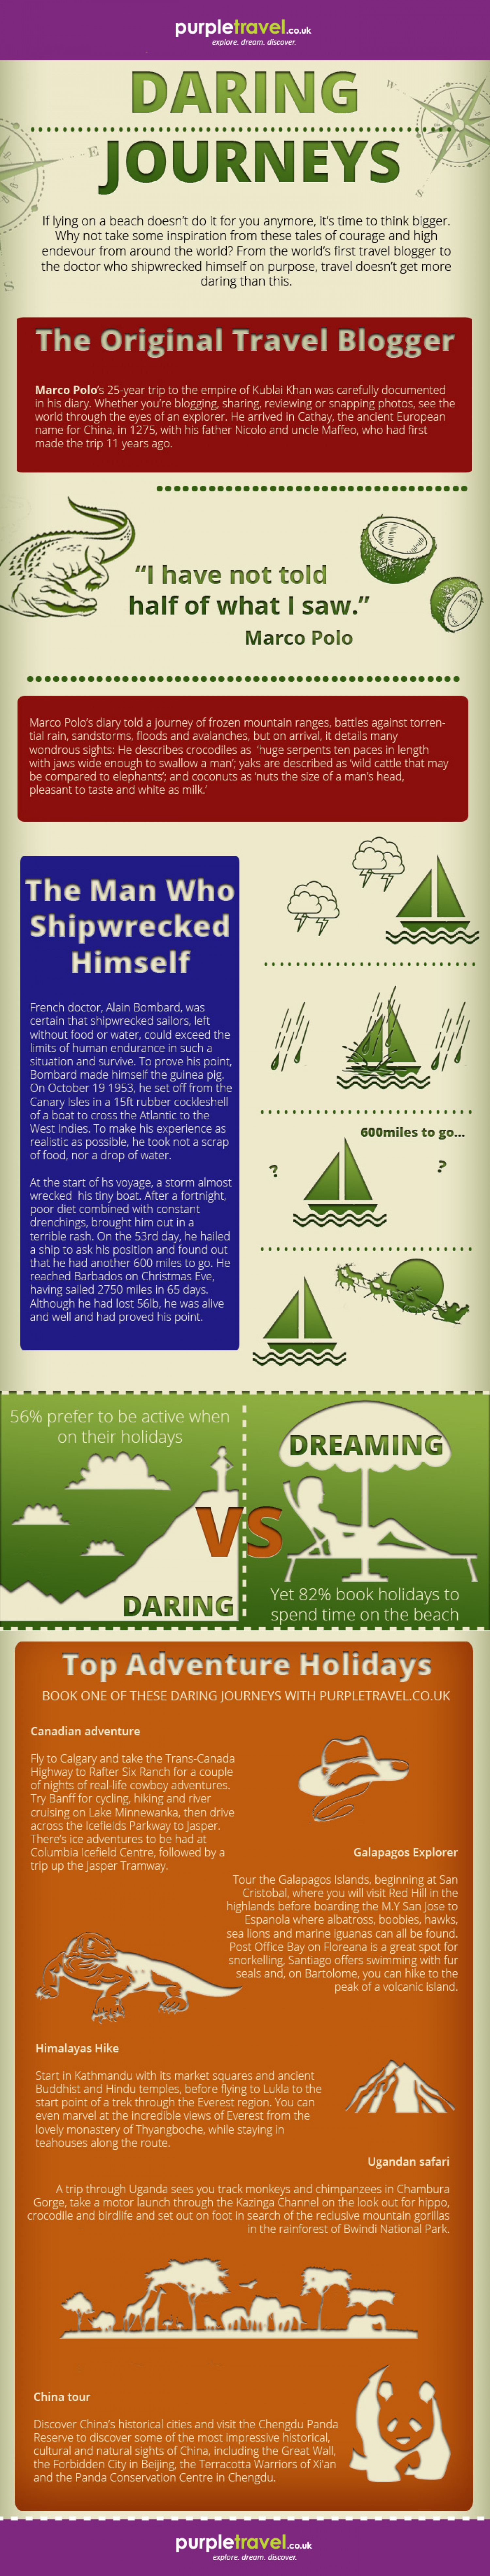 Daring Journeys Infographic